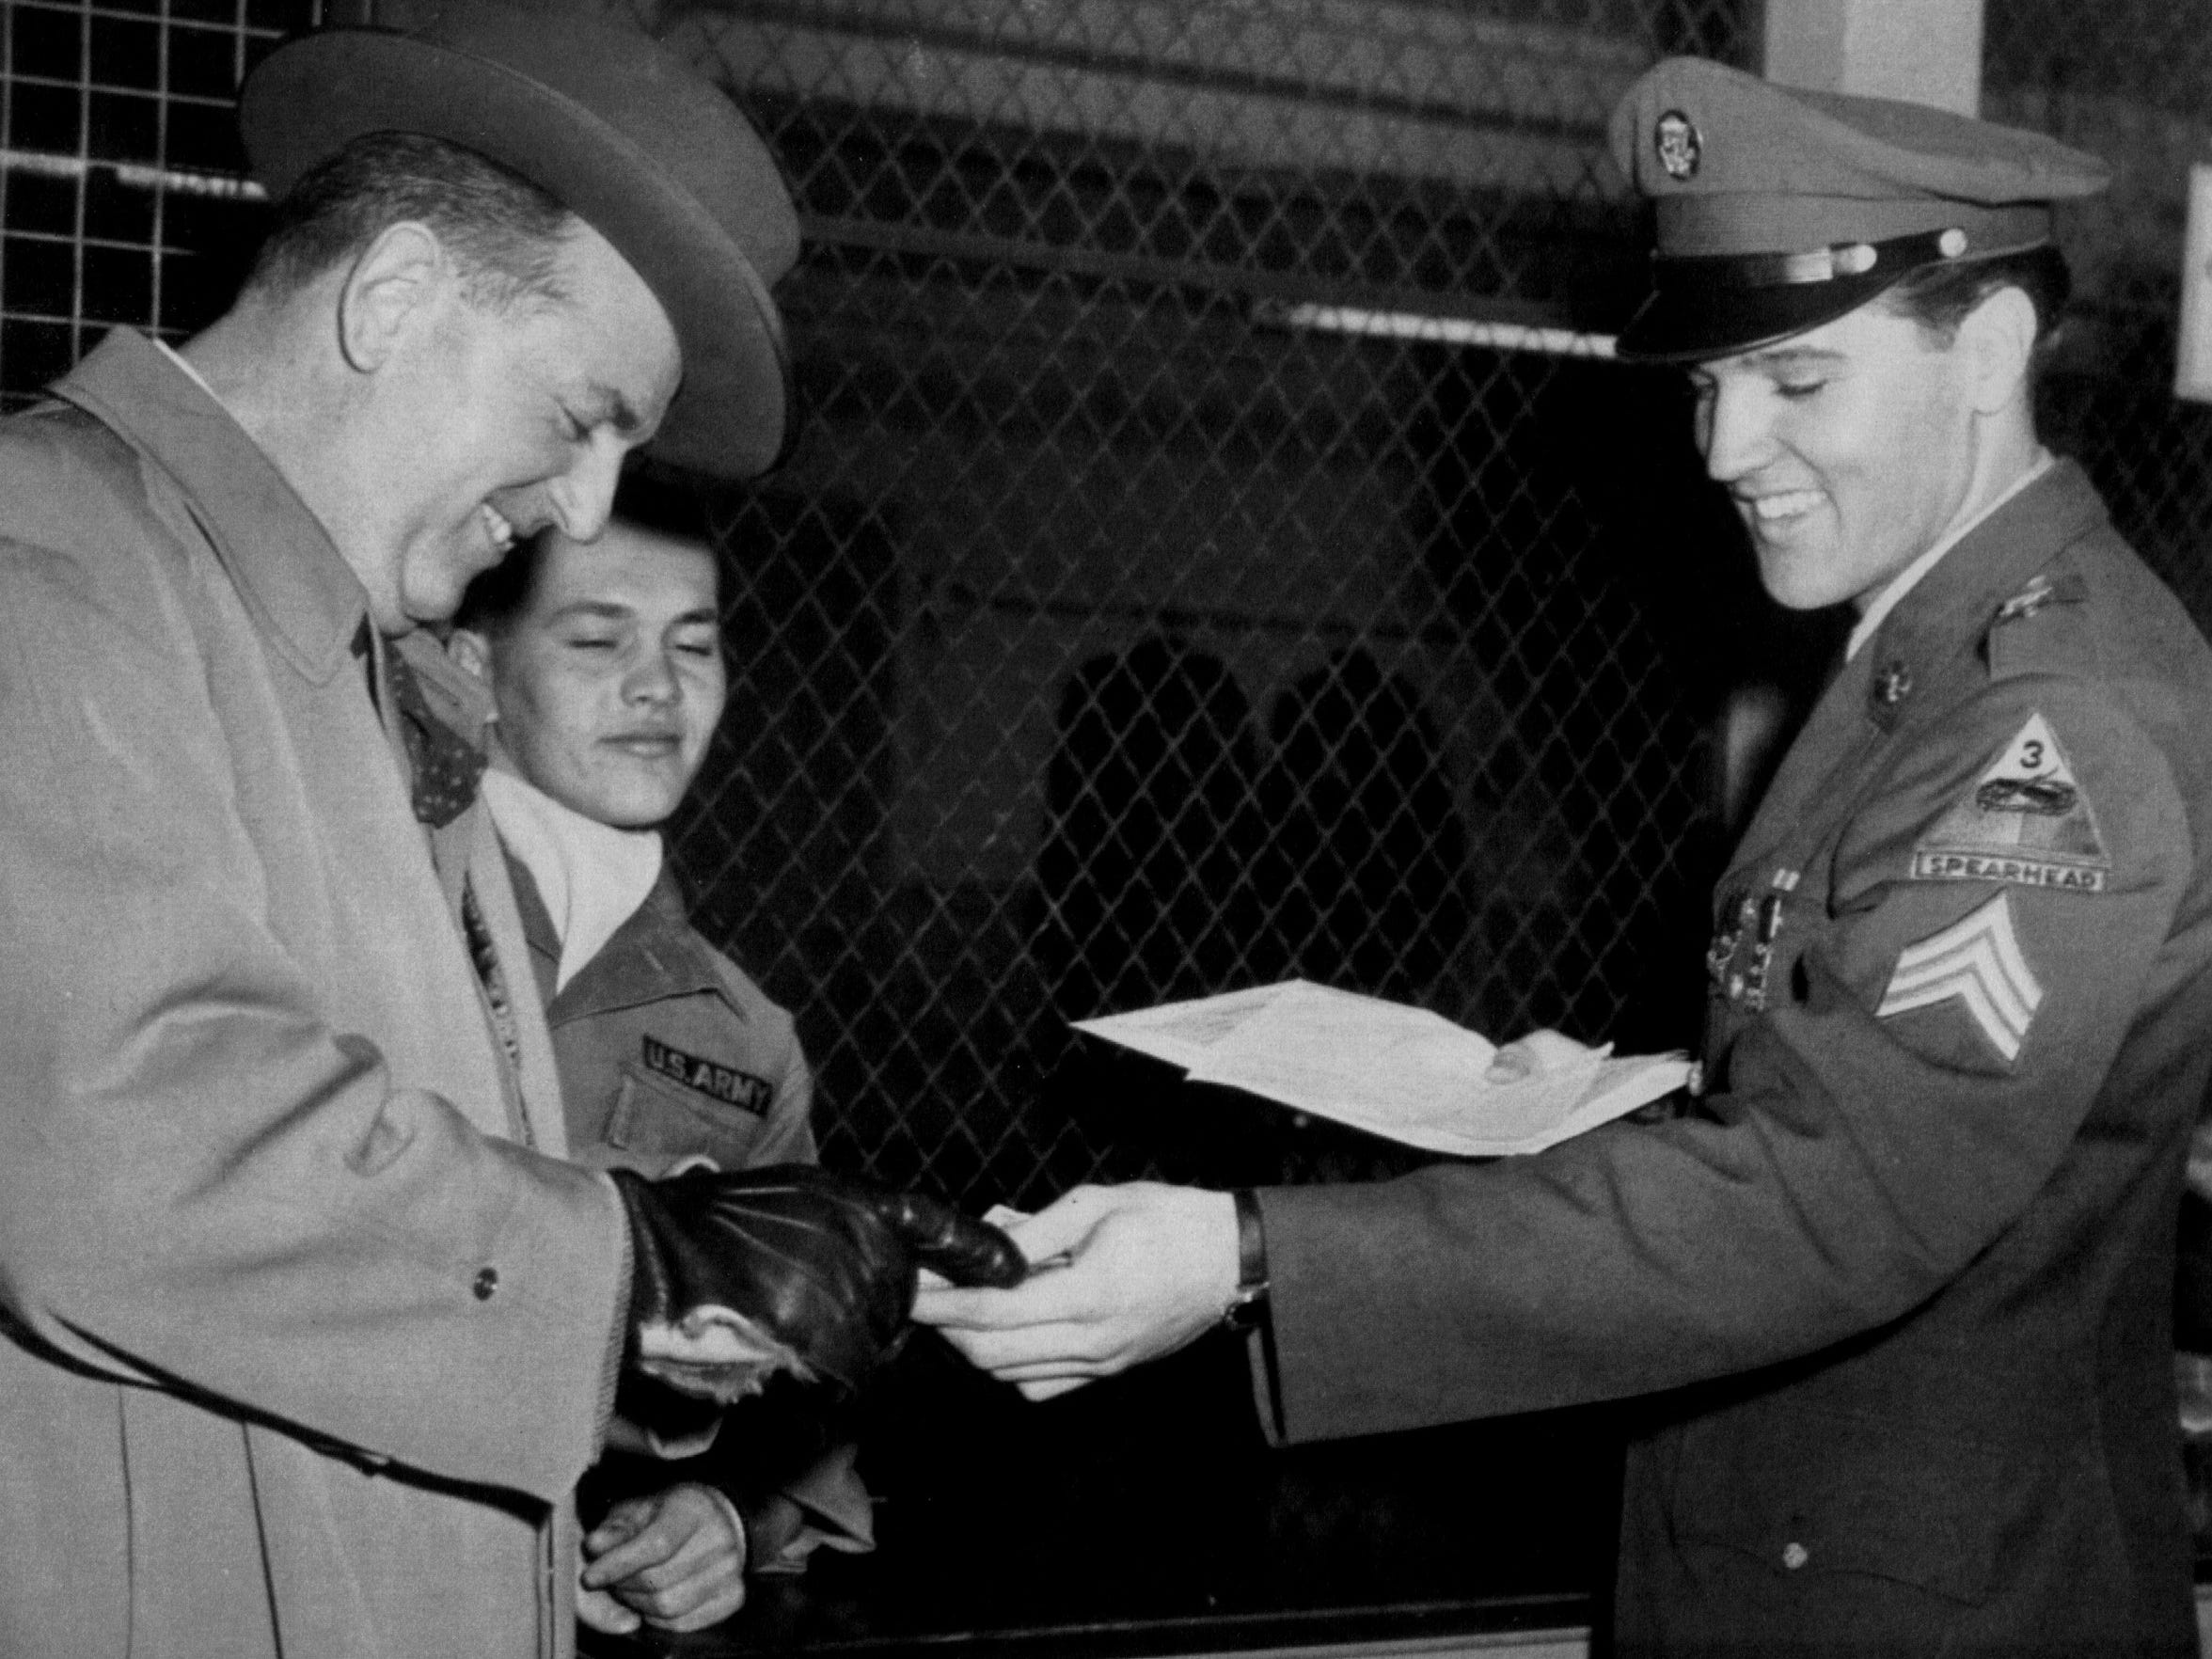 Discharged from the U.S. Army with the rank of sergeant, Elvis Presley grins as he hands his mustering out pay to his business manager, Col. Tom Parker, in this March 5, 1960, photograph. The next day, Elvis would board a train for Memphis, arriving about 7:45 a.m. March 7.